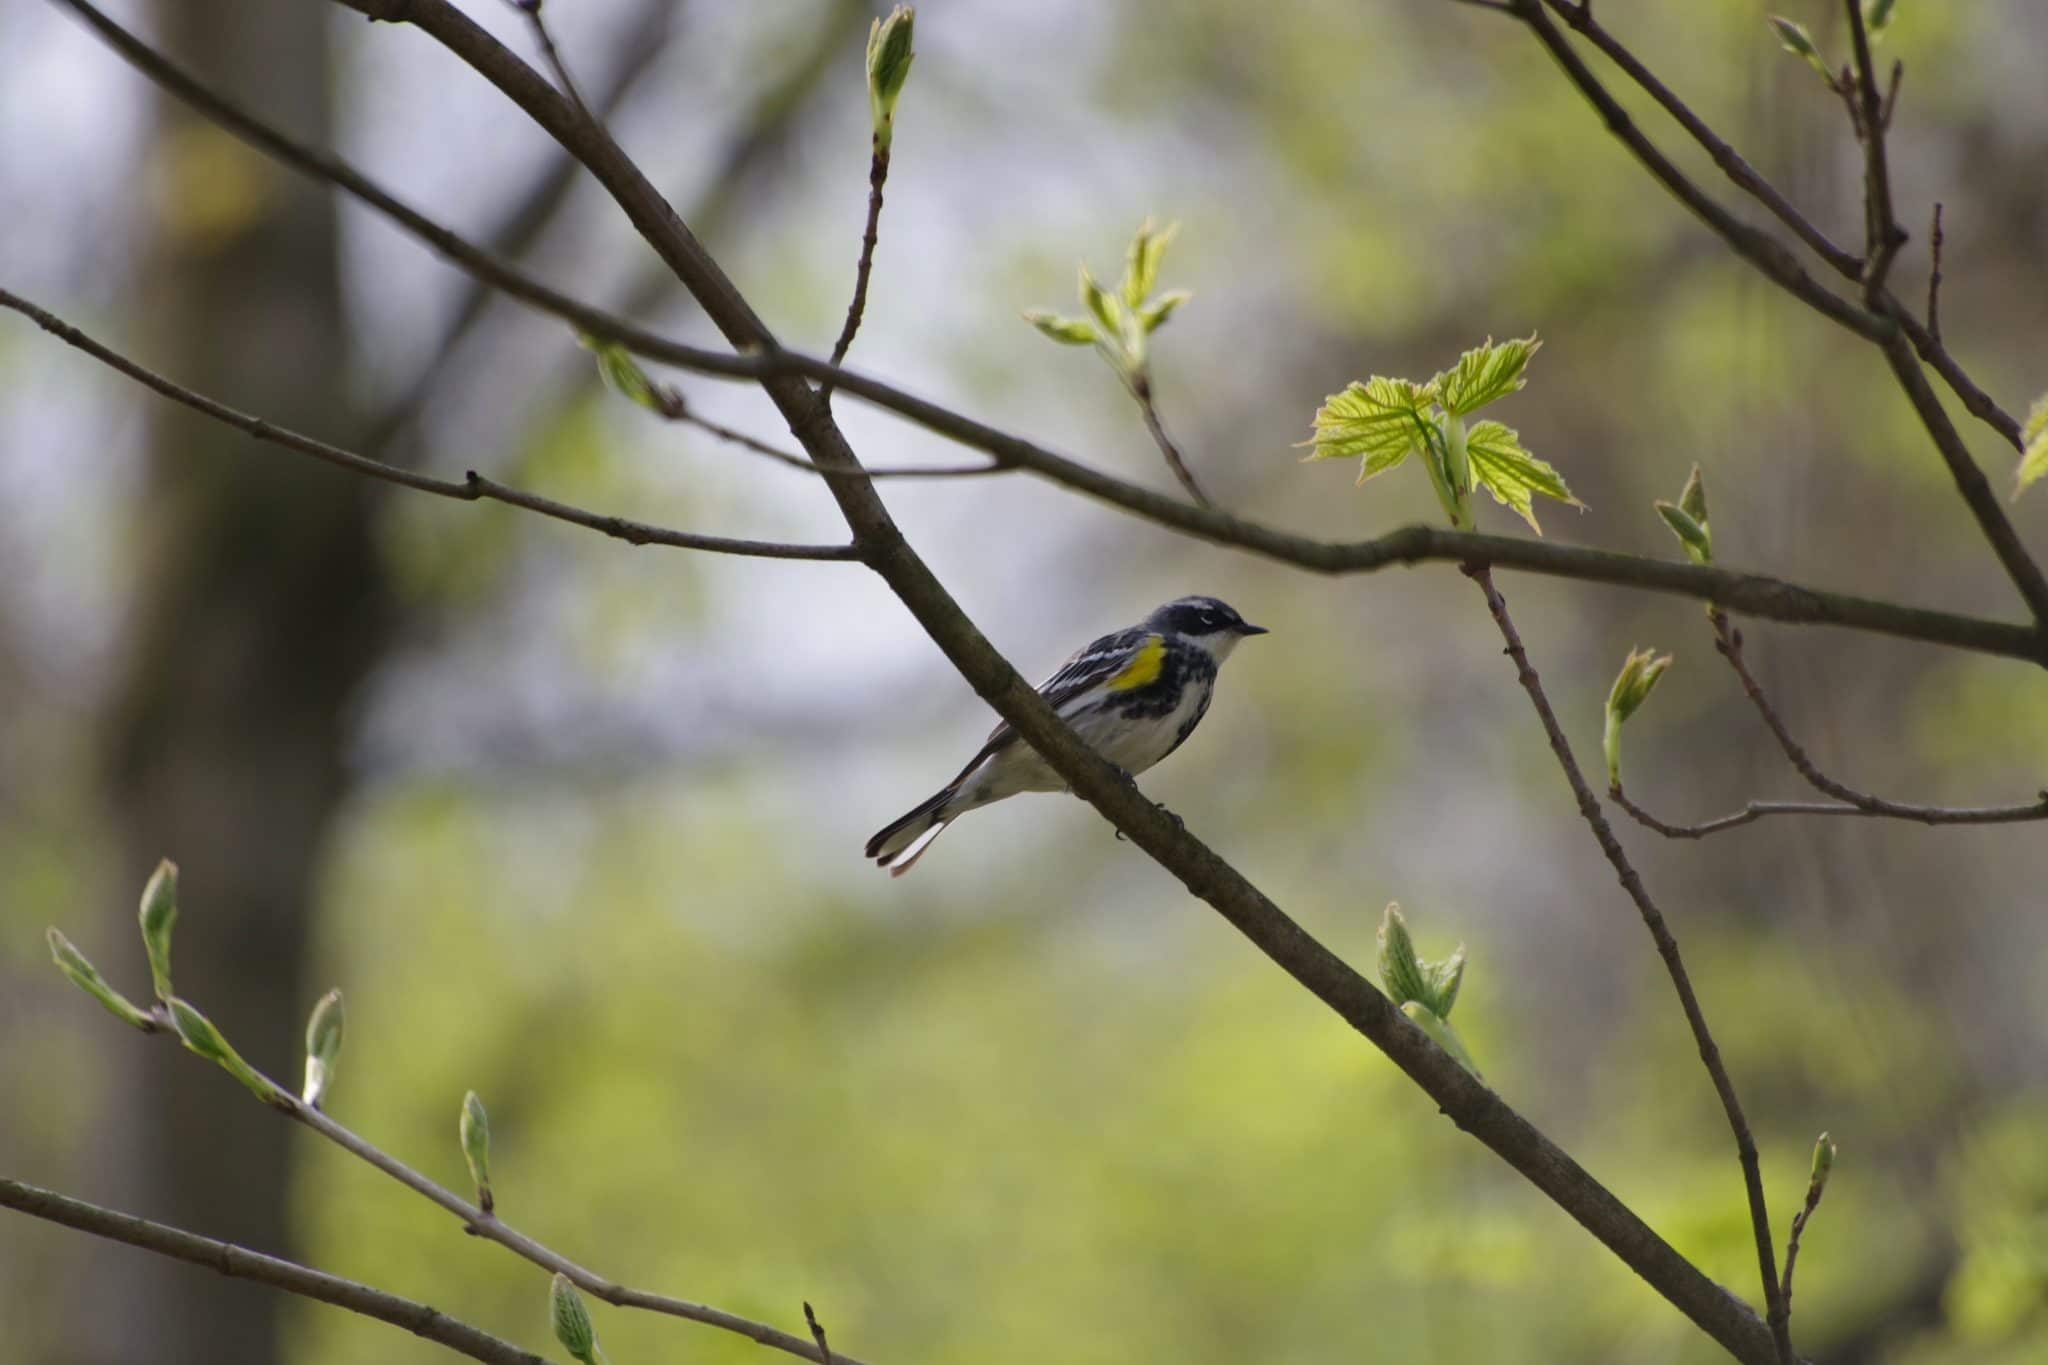 Black, white, and yellow bird on a branch